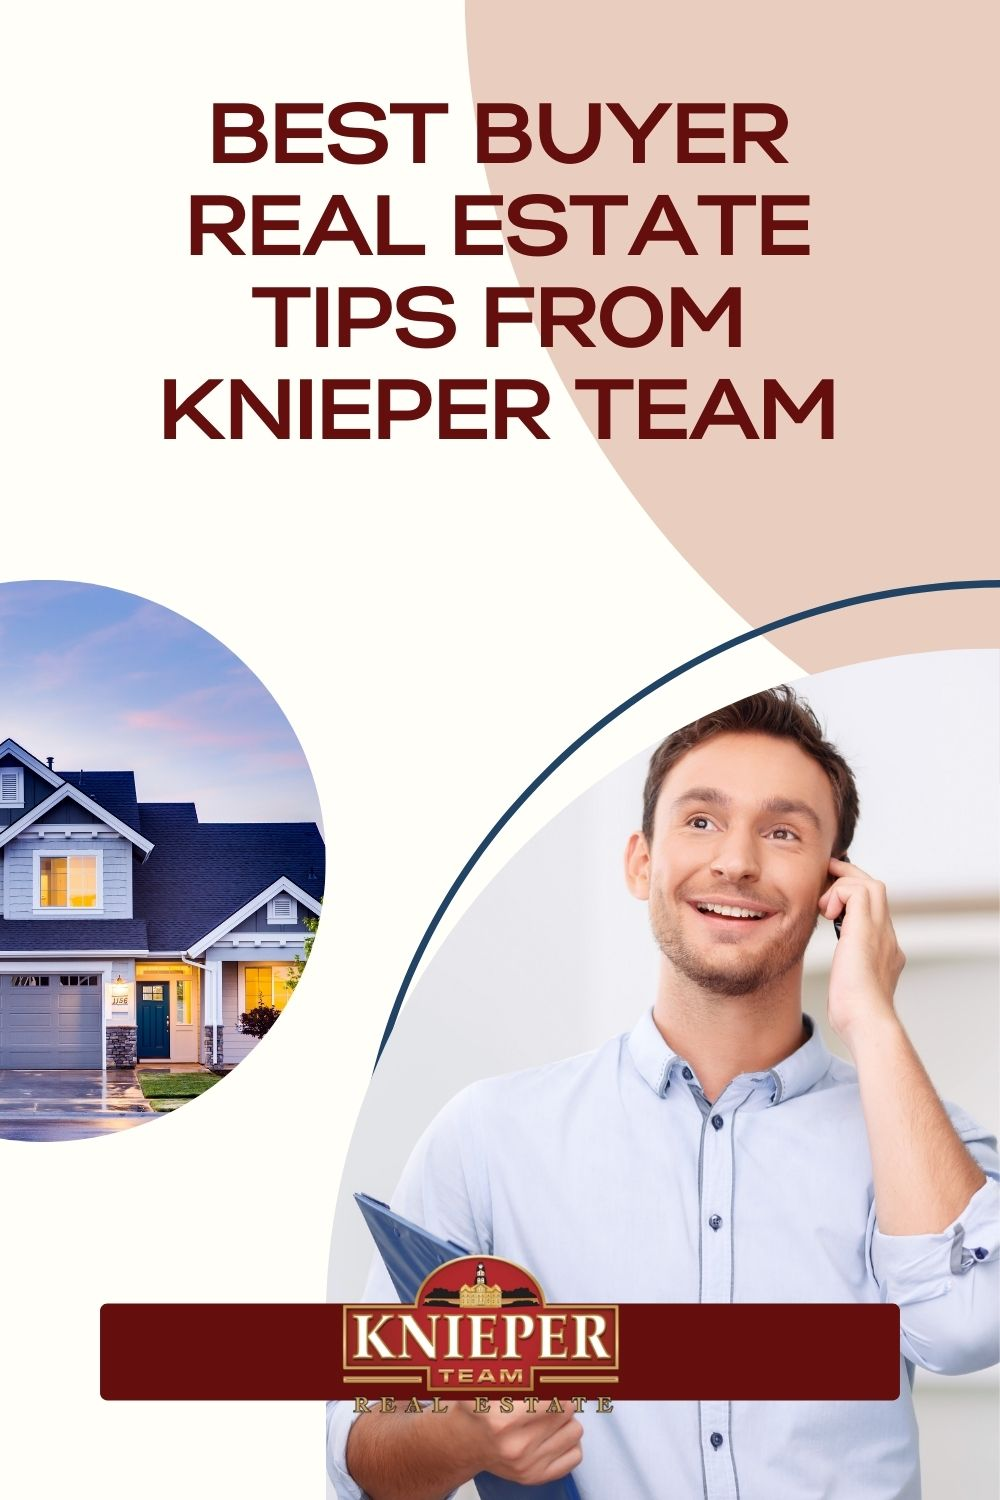 Best Buyer Real Estate Tips from Knieper Team